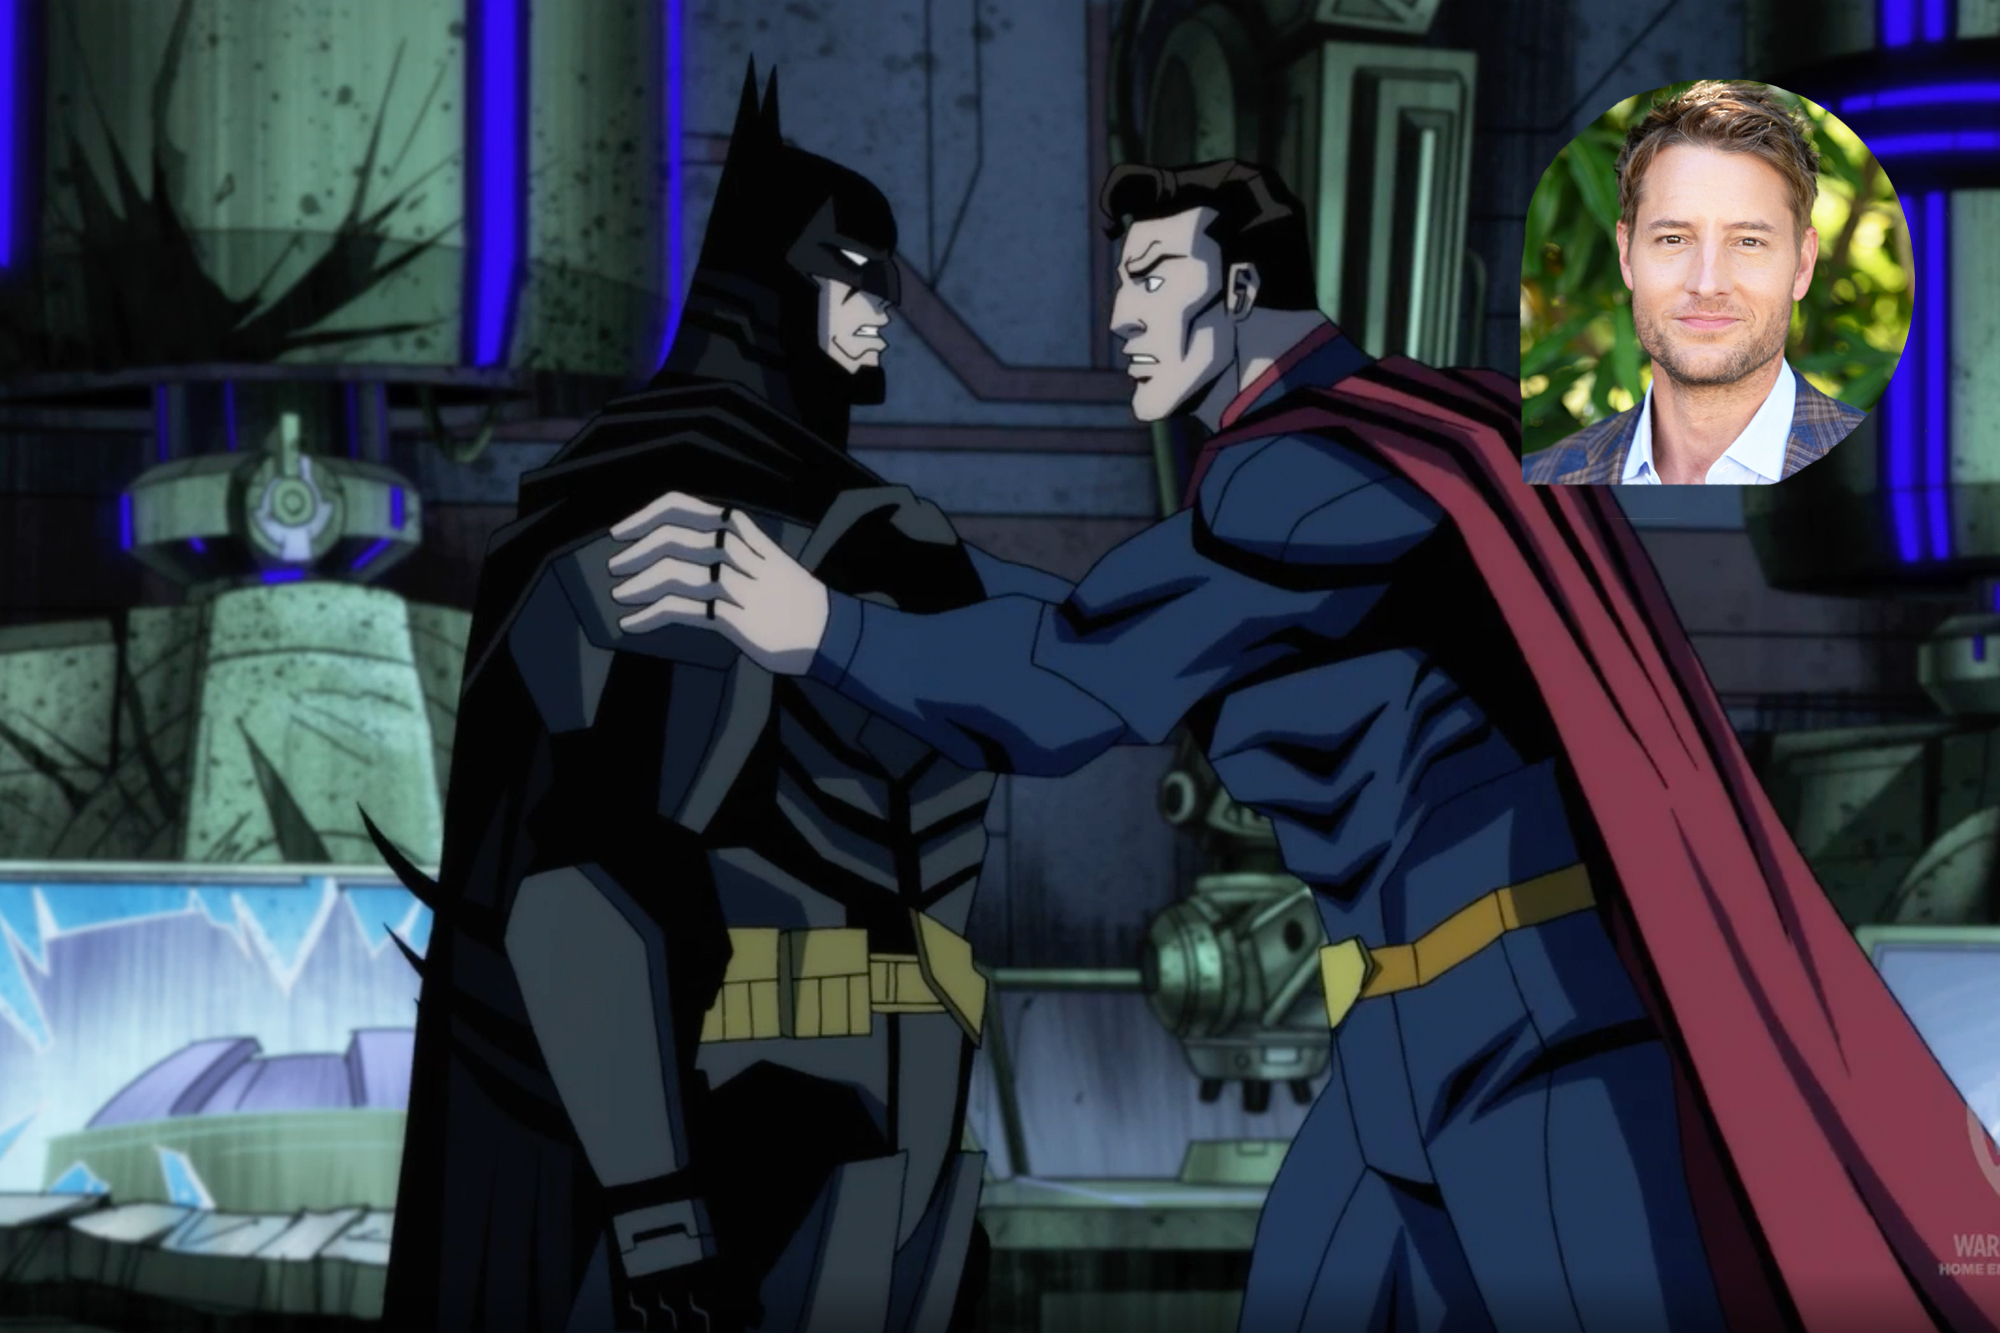 Watch an exclusive clip from DC's new Injustice animated movie